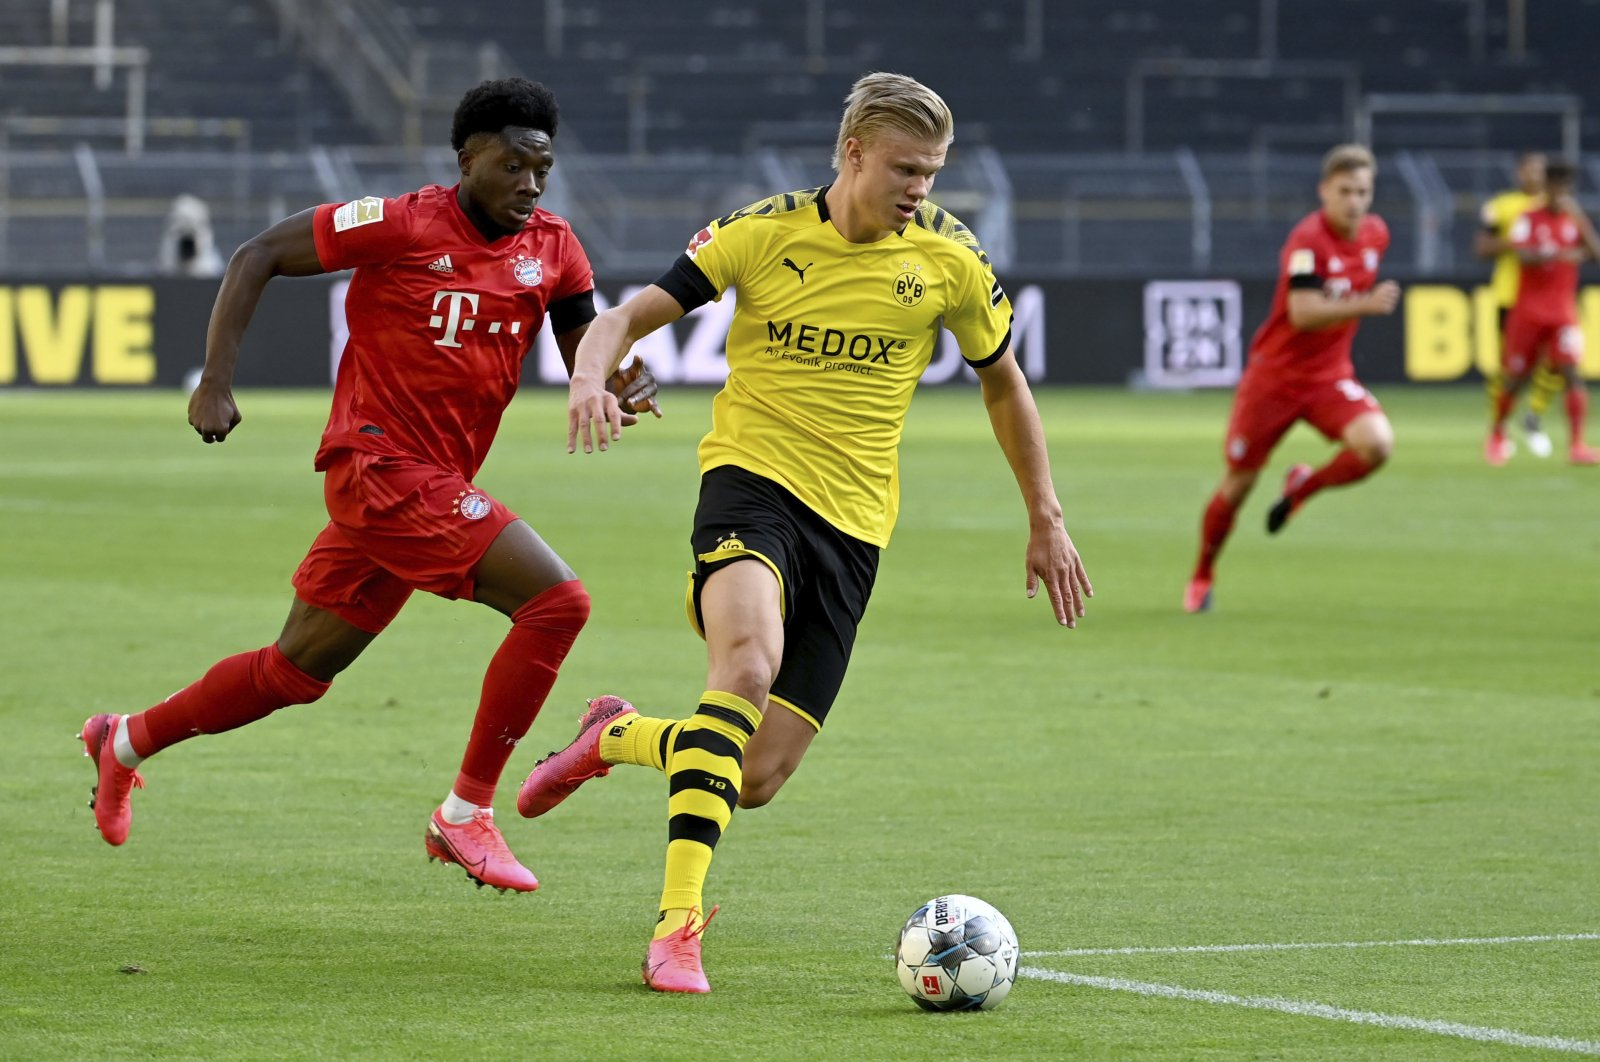 Bayern Munich's Alphonso Davies (L) challenges Dortmund's Erling Haaland for the ball during a Bundesliga match in Dortmund, Germany, May 26, 2020. (AP Photo)